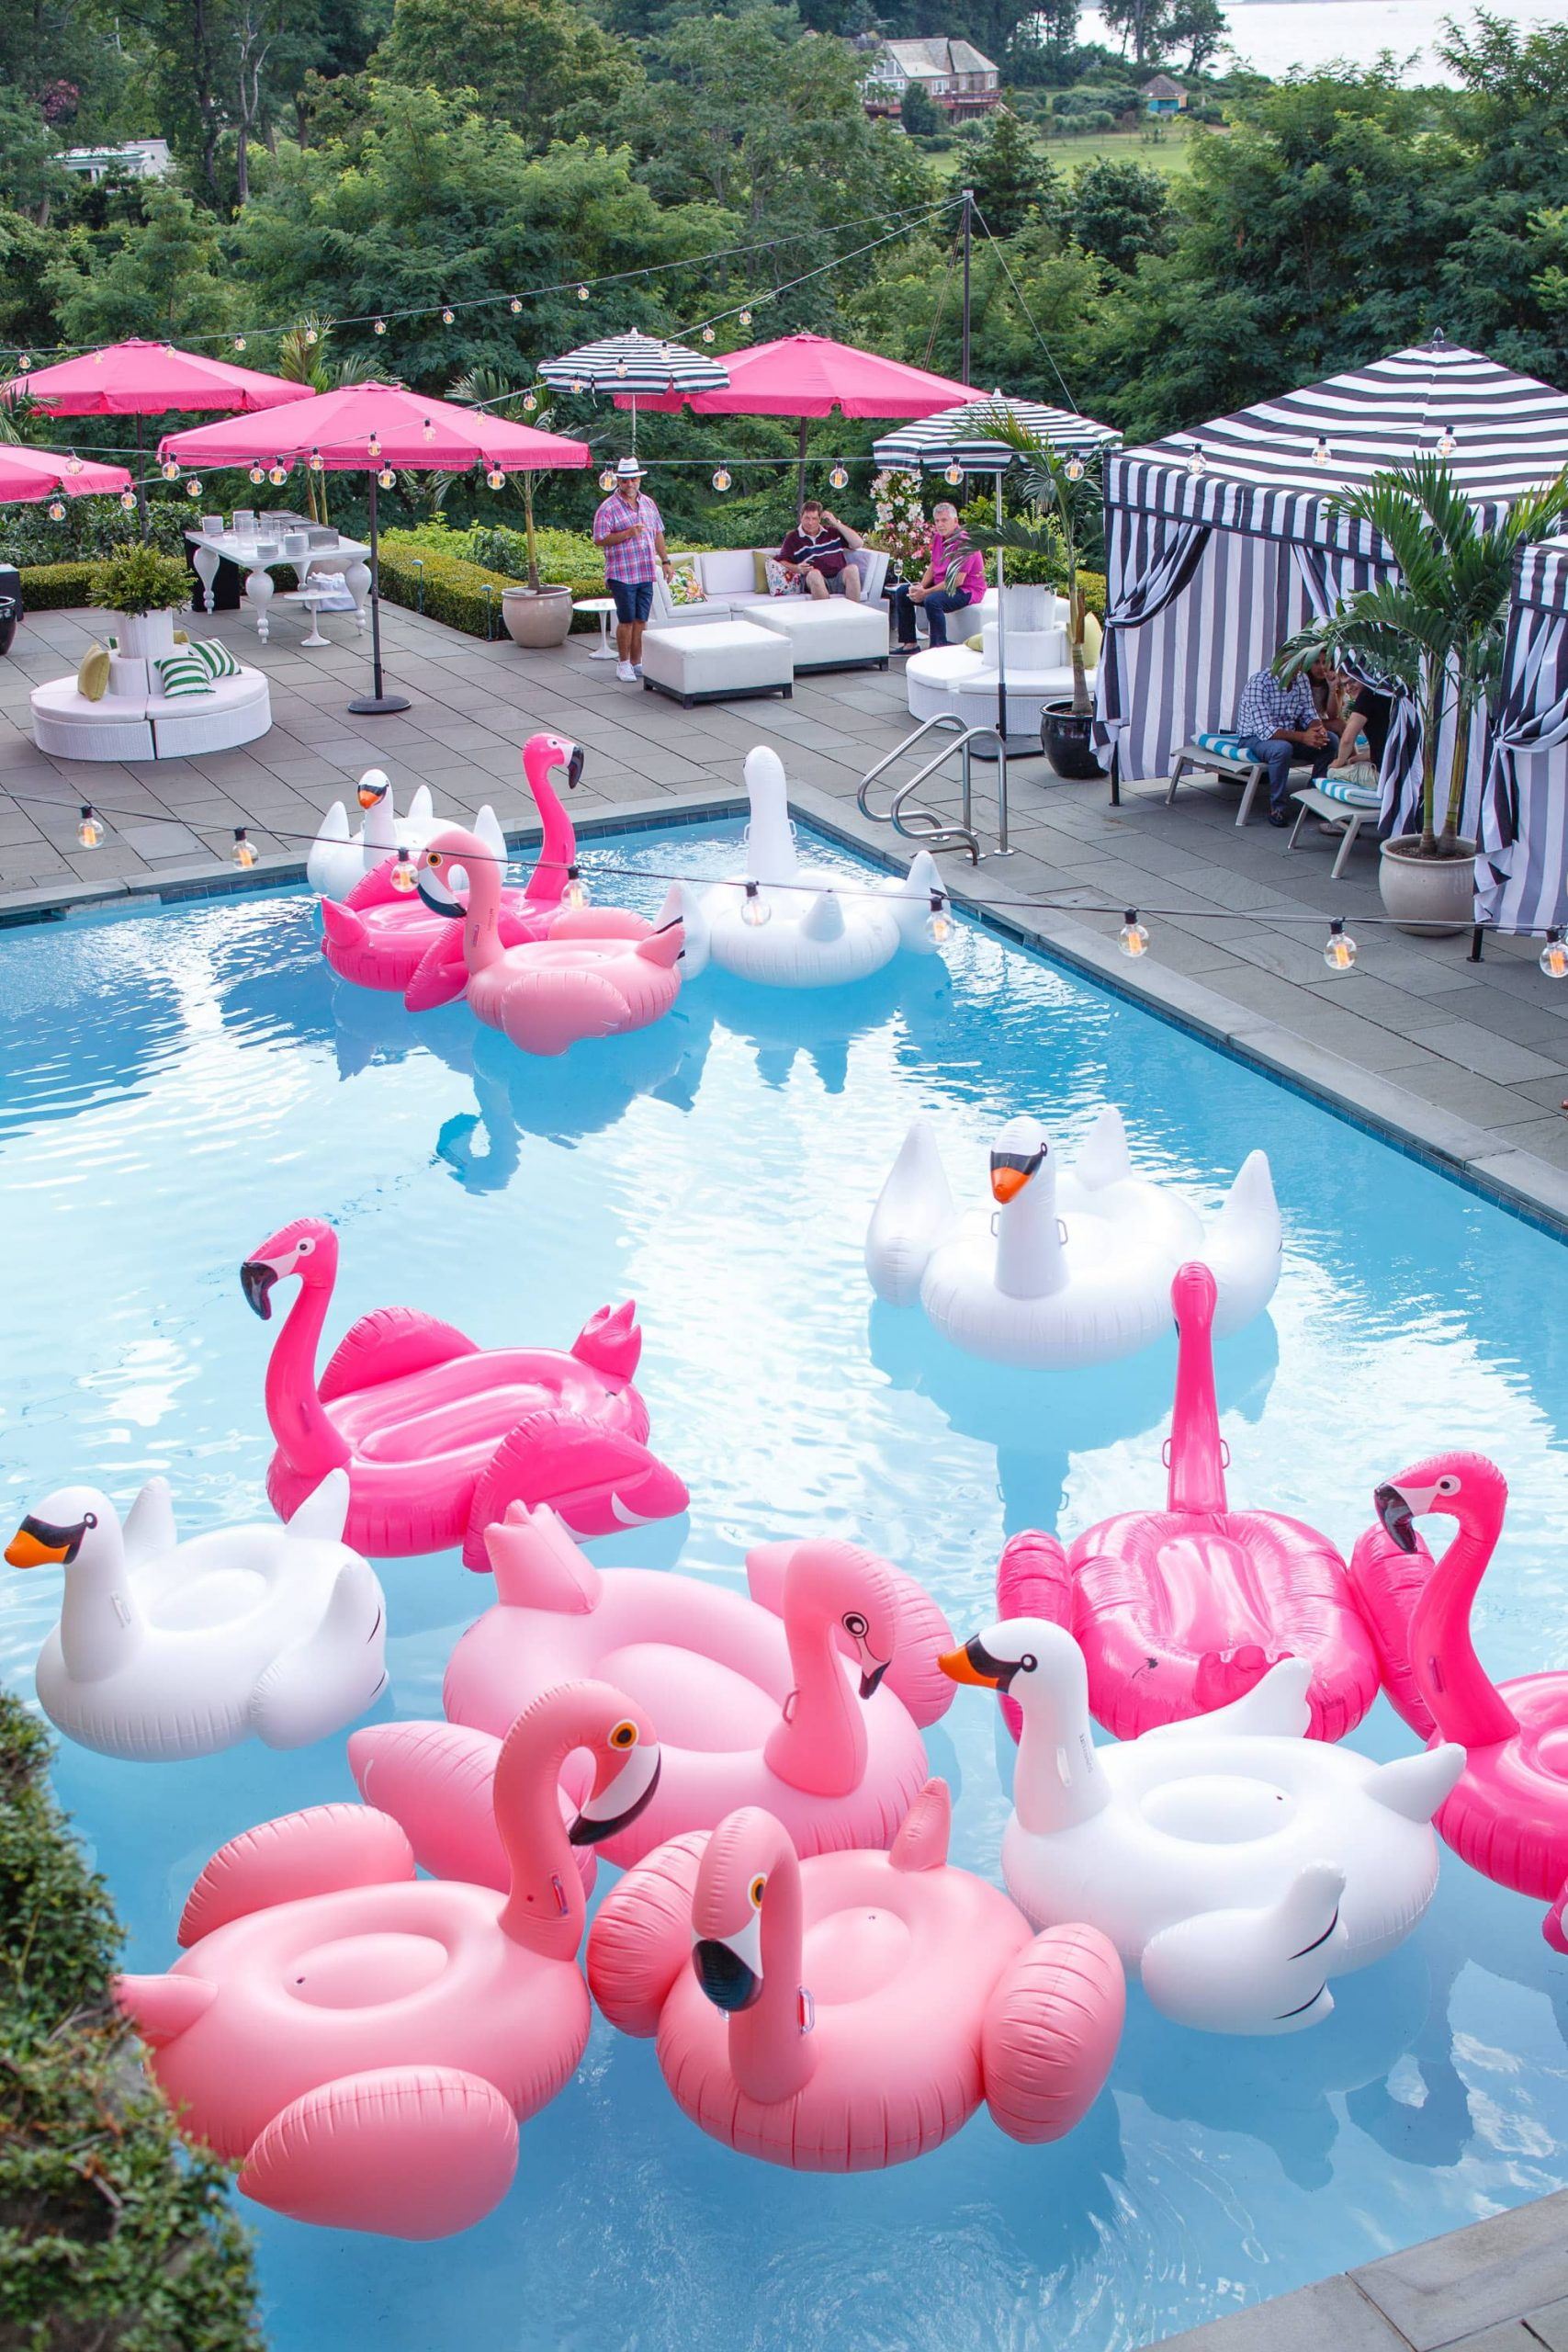 Pool filled with flamingo and swan floaties at this South Beach-inspired first birthday pool party in the Hamptons | Photo by Cava Photo